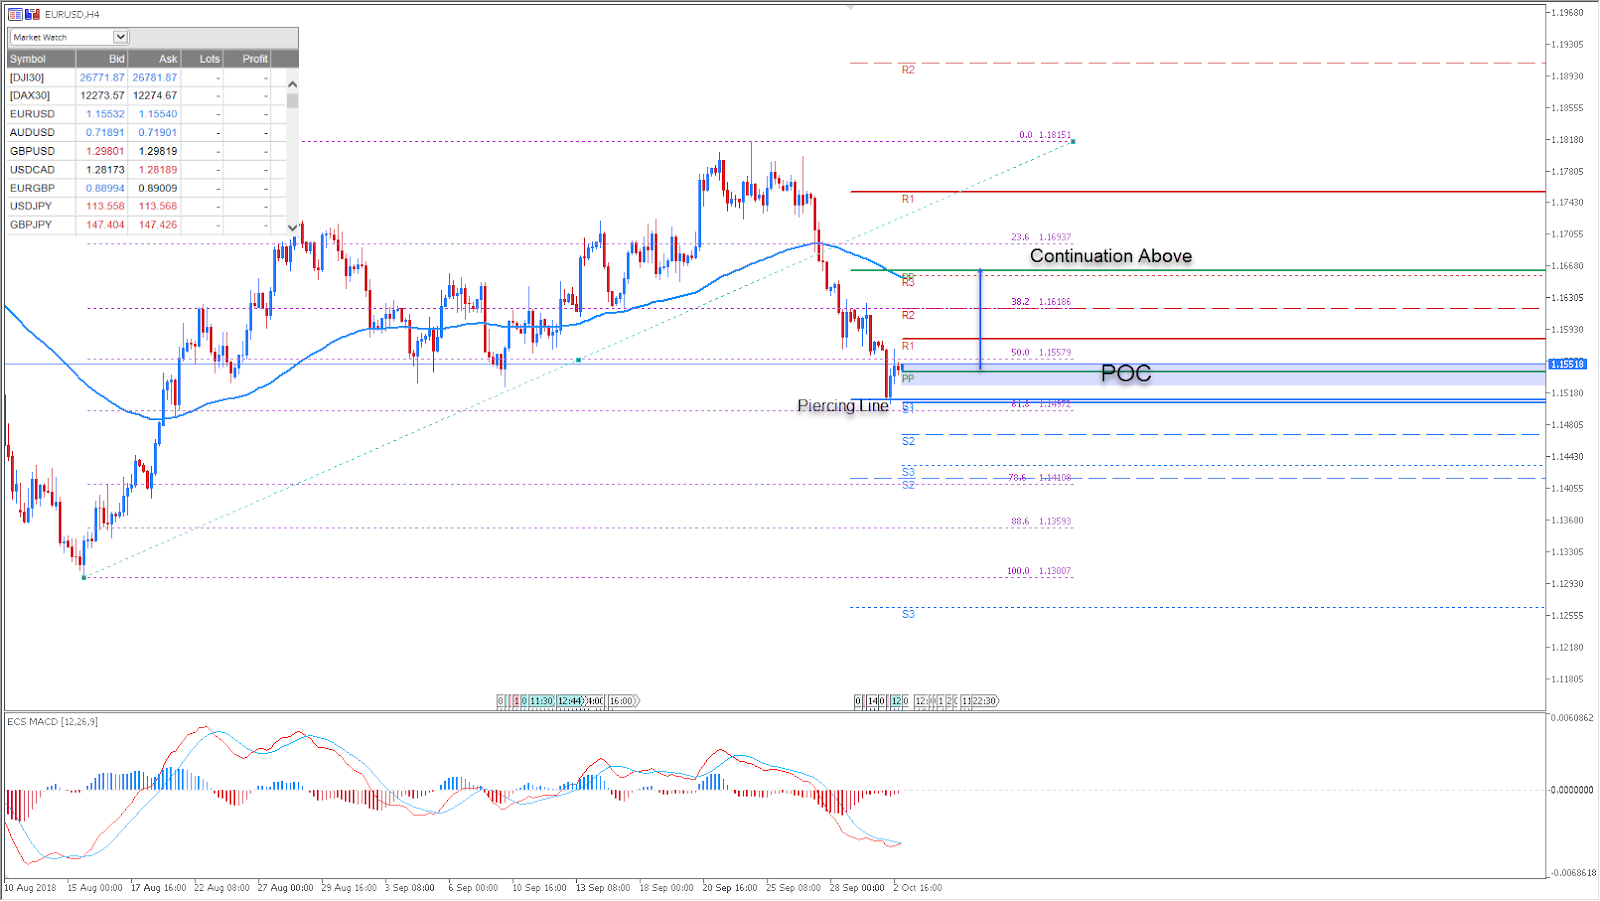 EURUSD Daily Chart - Technical Analysis